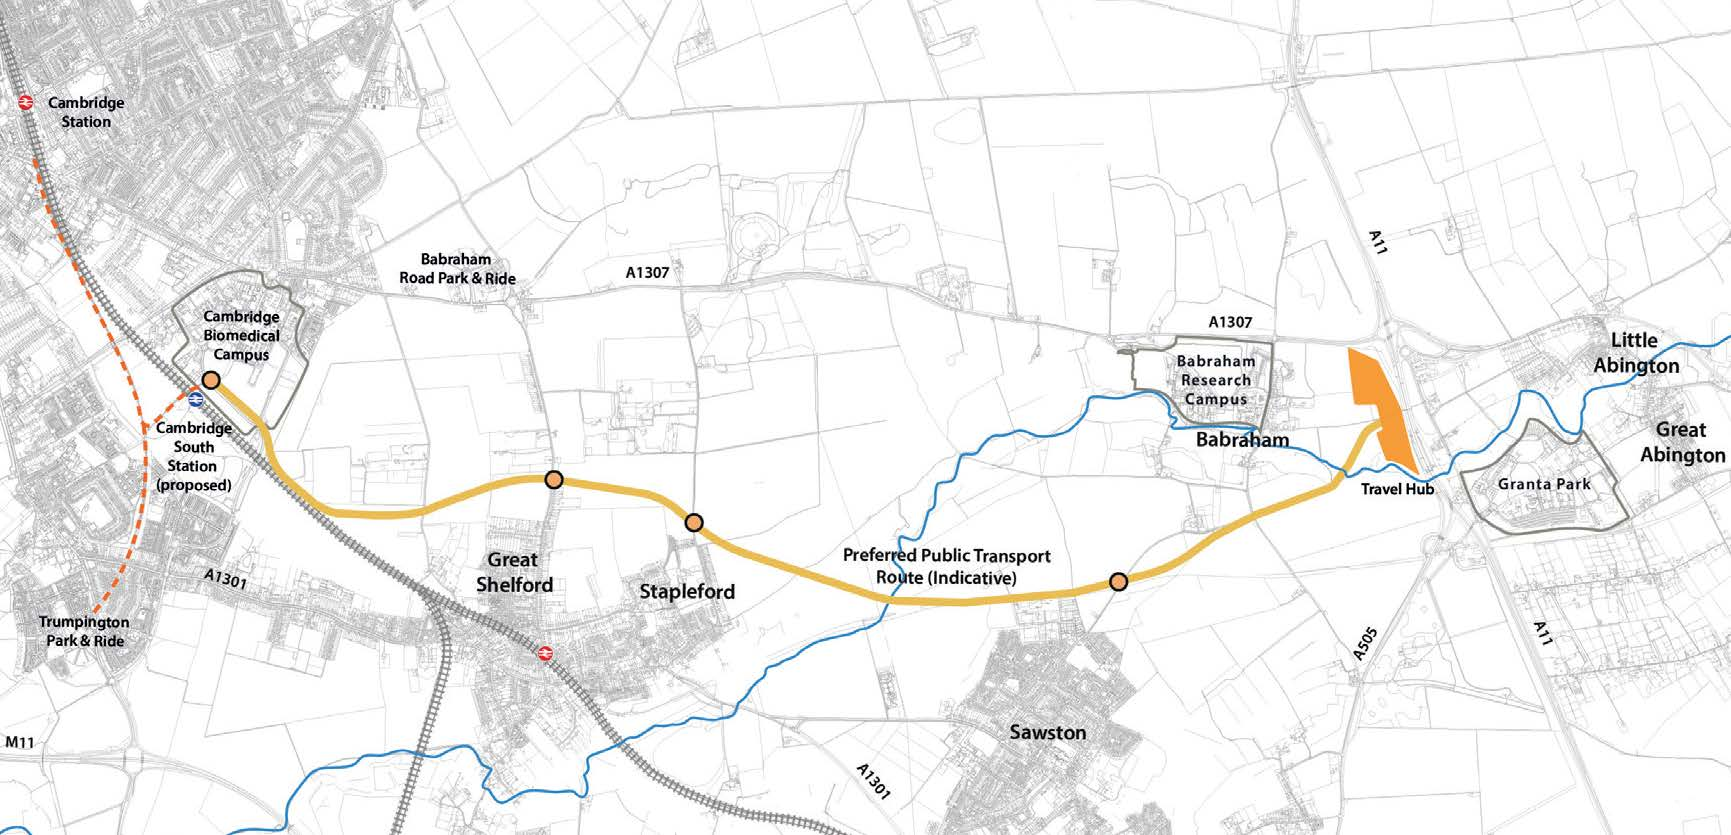 A map showing the proposed alignment for the off road public transport route, from the travel hub, south of Babraham, touching on the north of Sawston, the north of Stapleford, the north of Great Shelford, and meeting up with the planned Cambridge South rail station at the Cambridge Biomedical Campus, near Addenbrookes Hospital